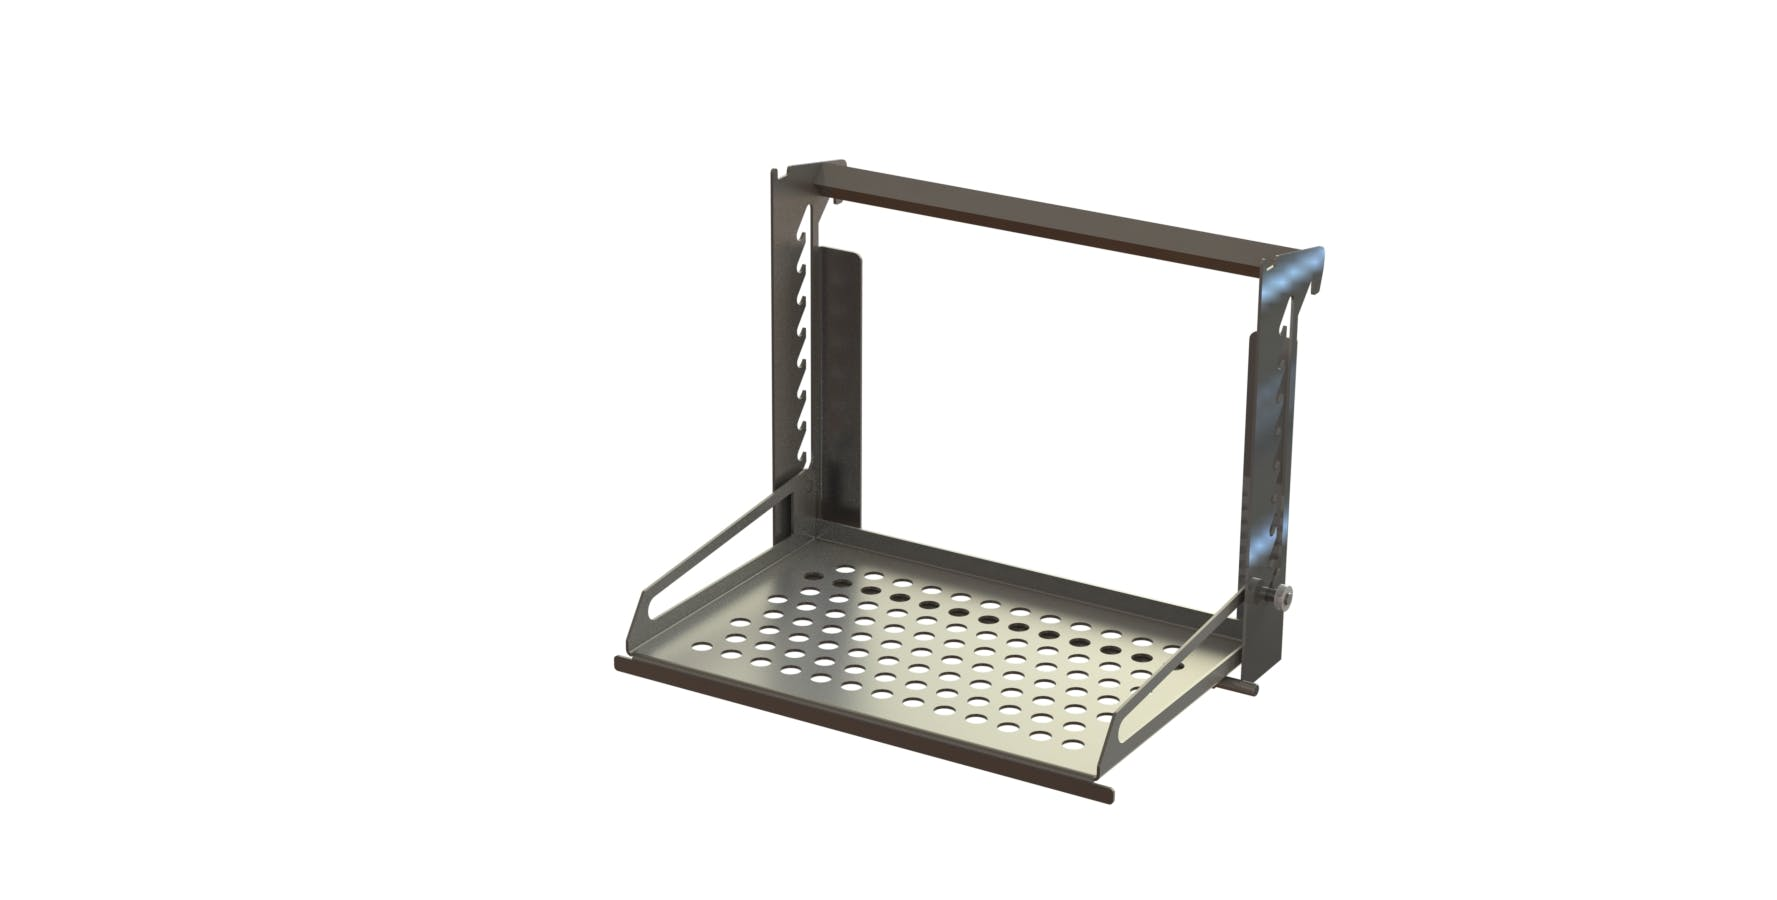 ERG-400 Ergonomic Stand - ERG-400 Ergonomic Stand - sold by Fusion Tech Integrated Inc.